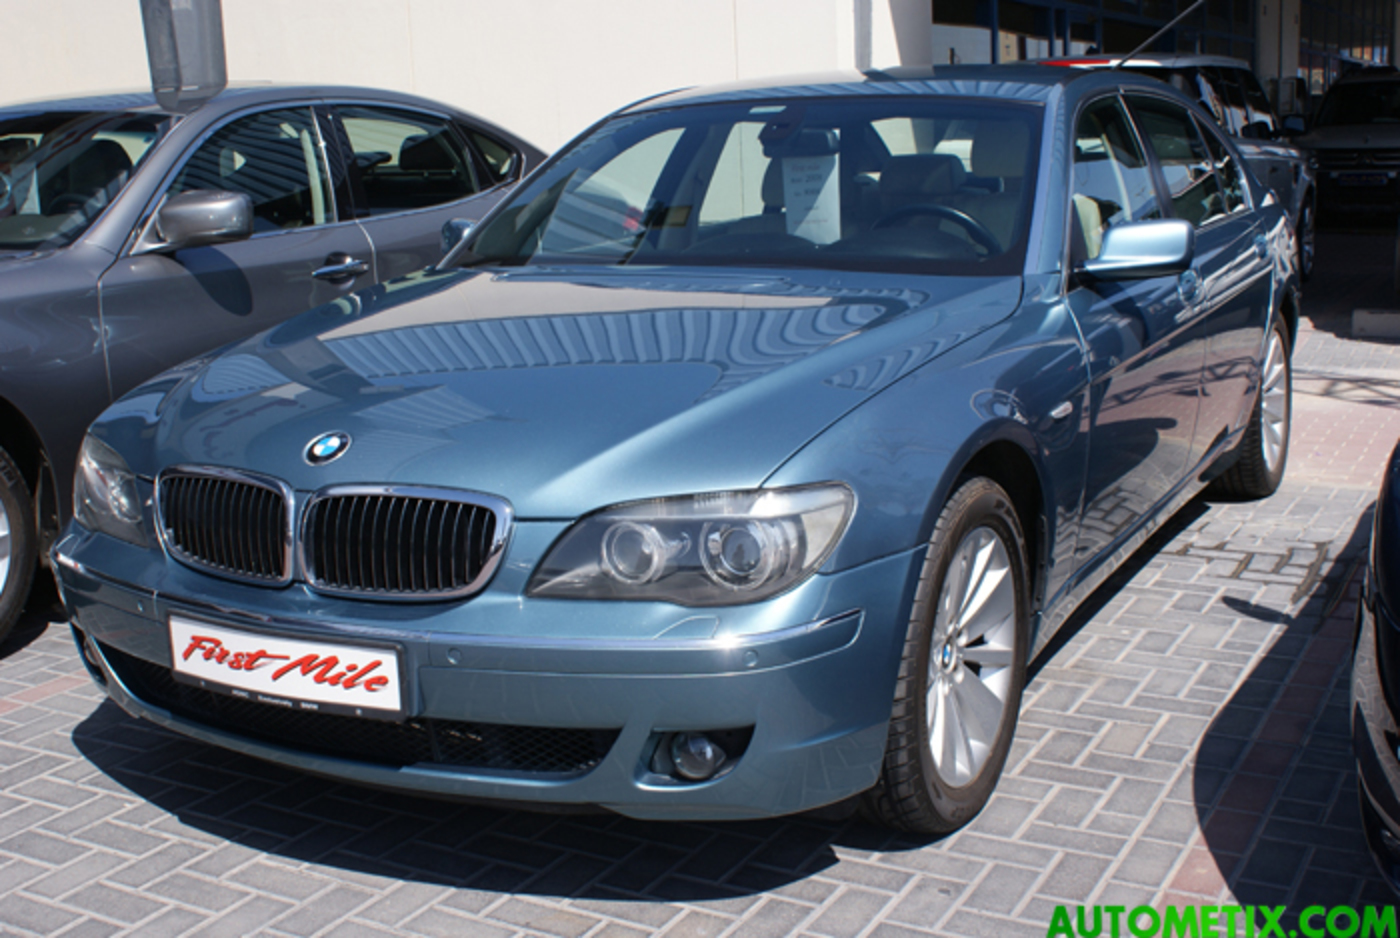 Make: BMW - 730iL. Model: 730iL. Published in March 10,2012. AED 98,000